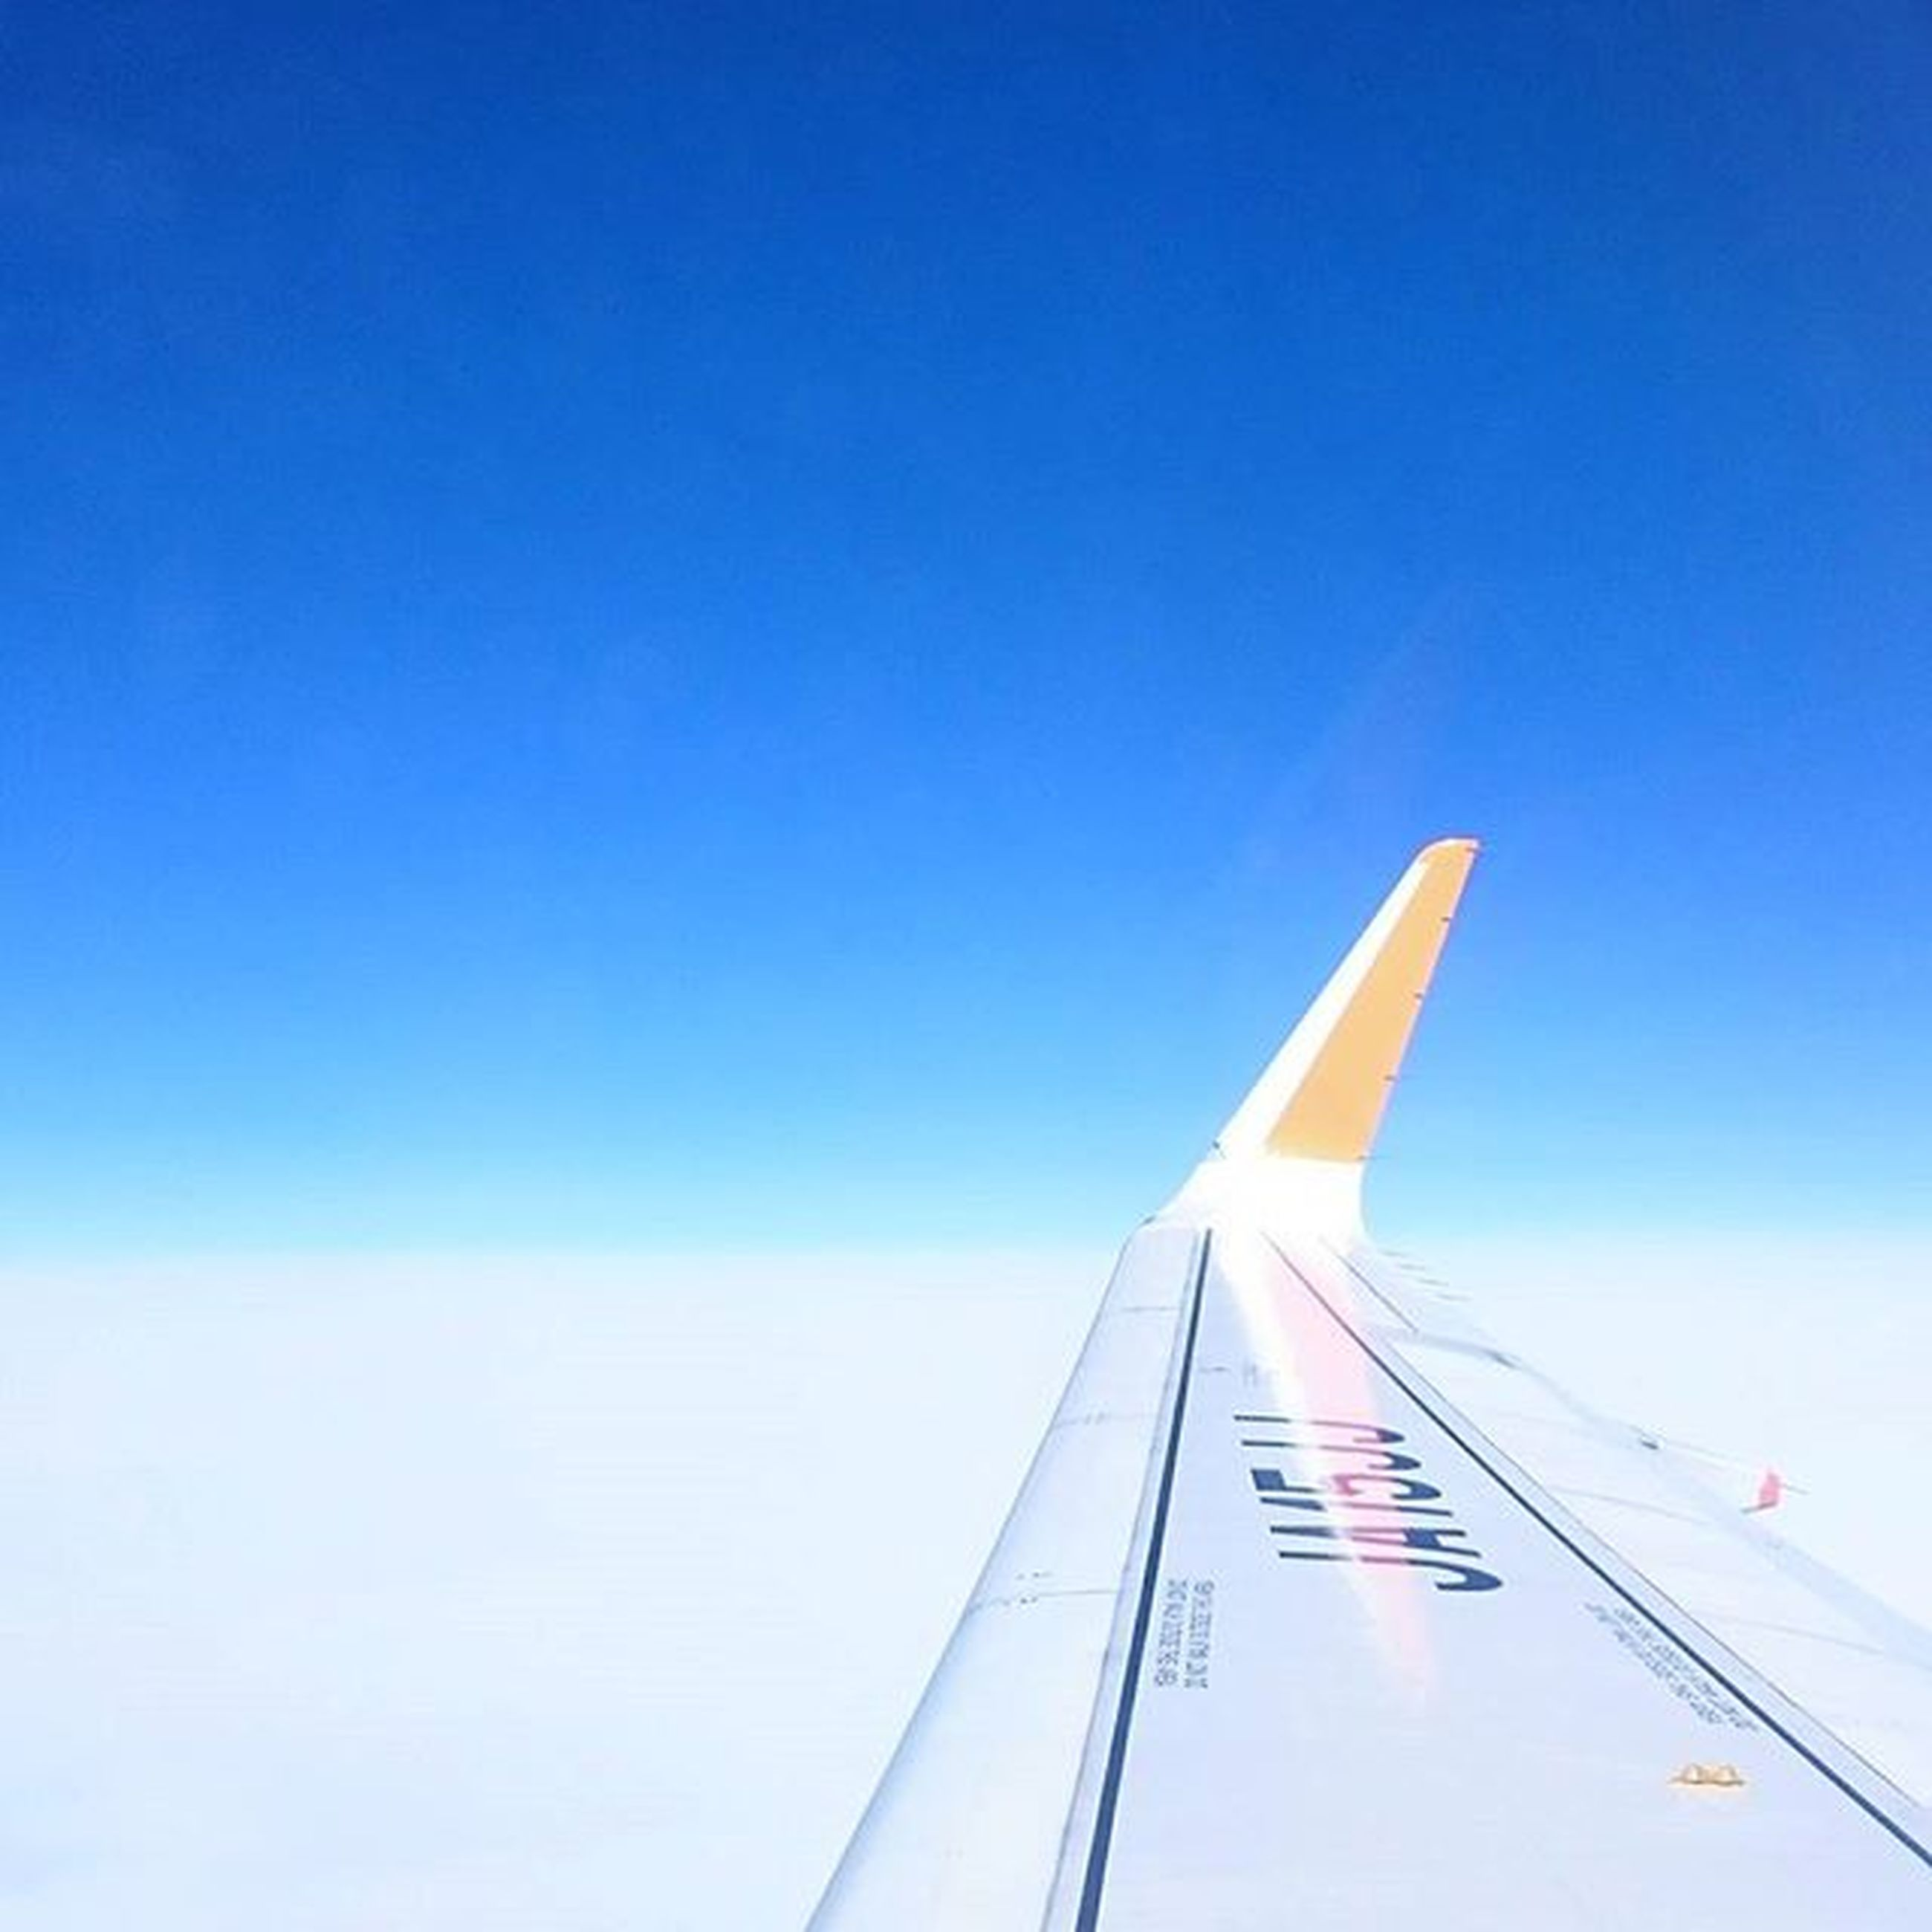 clear sky, blue, transportation, copy space, low angle view, part of, cropped, flying, air vehicle, airplane, travel, mode of transport, on the move, day, outdoors, sky, mid-air, white color, no people, motion